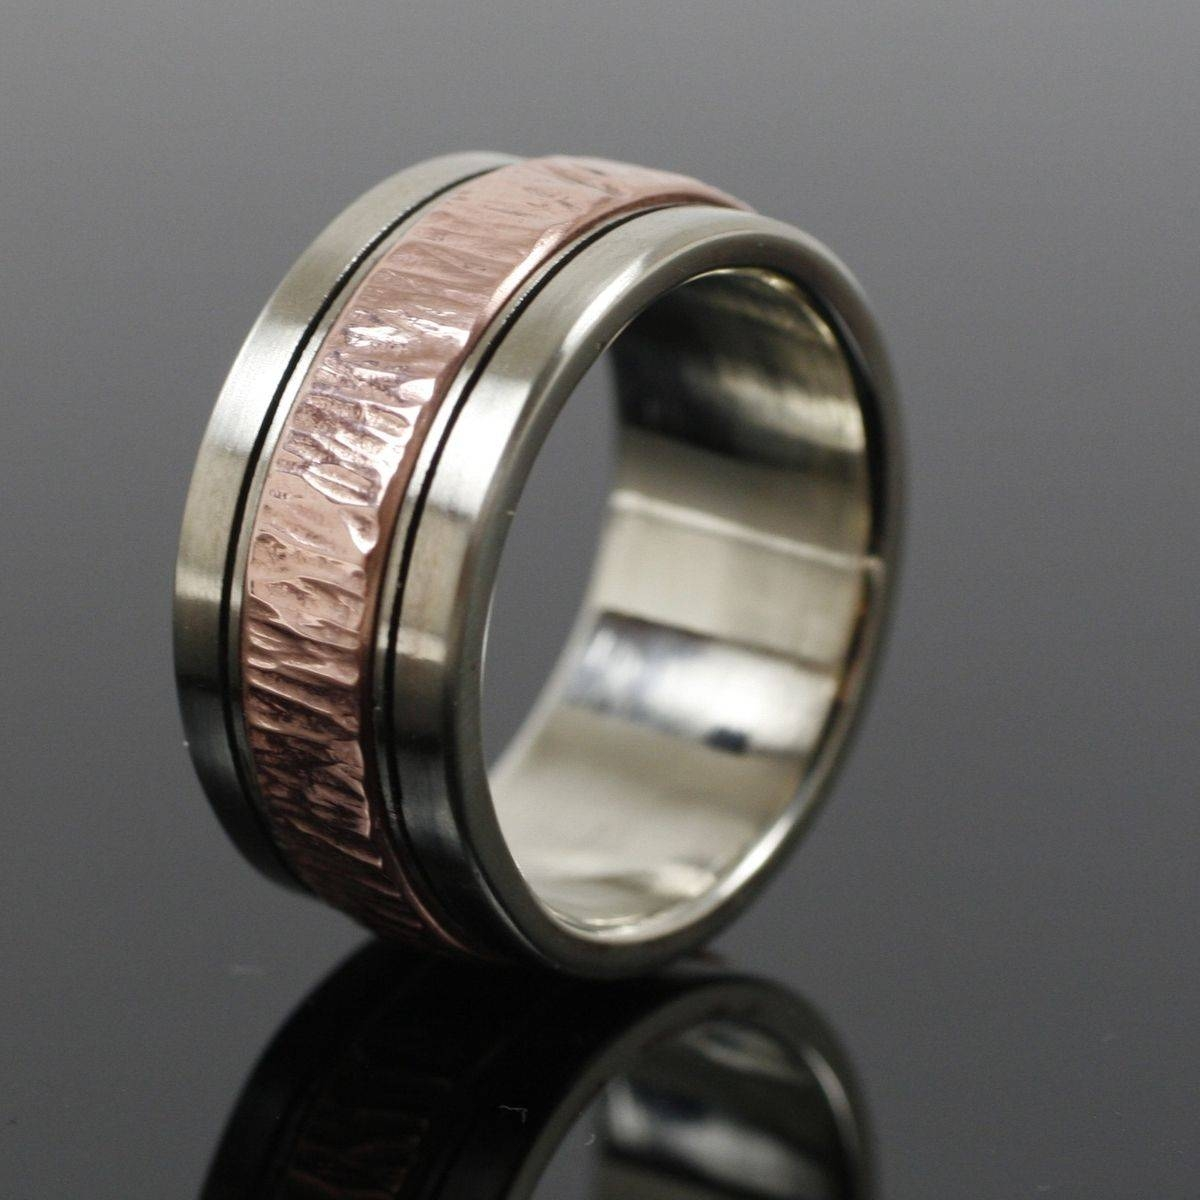 Hand Crafted Mens White Gold And Copper Wedding Bandearth Art Regarding Copper Men's Wedding Bands (View 2 of 15)